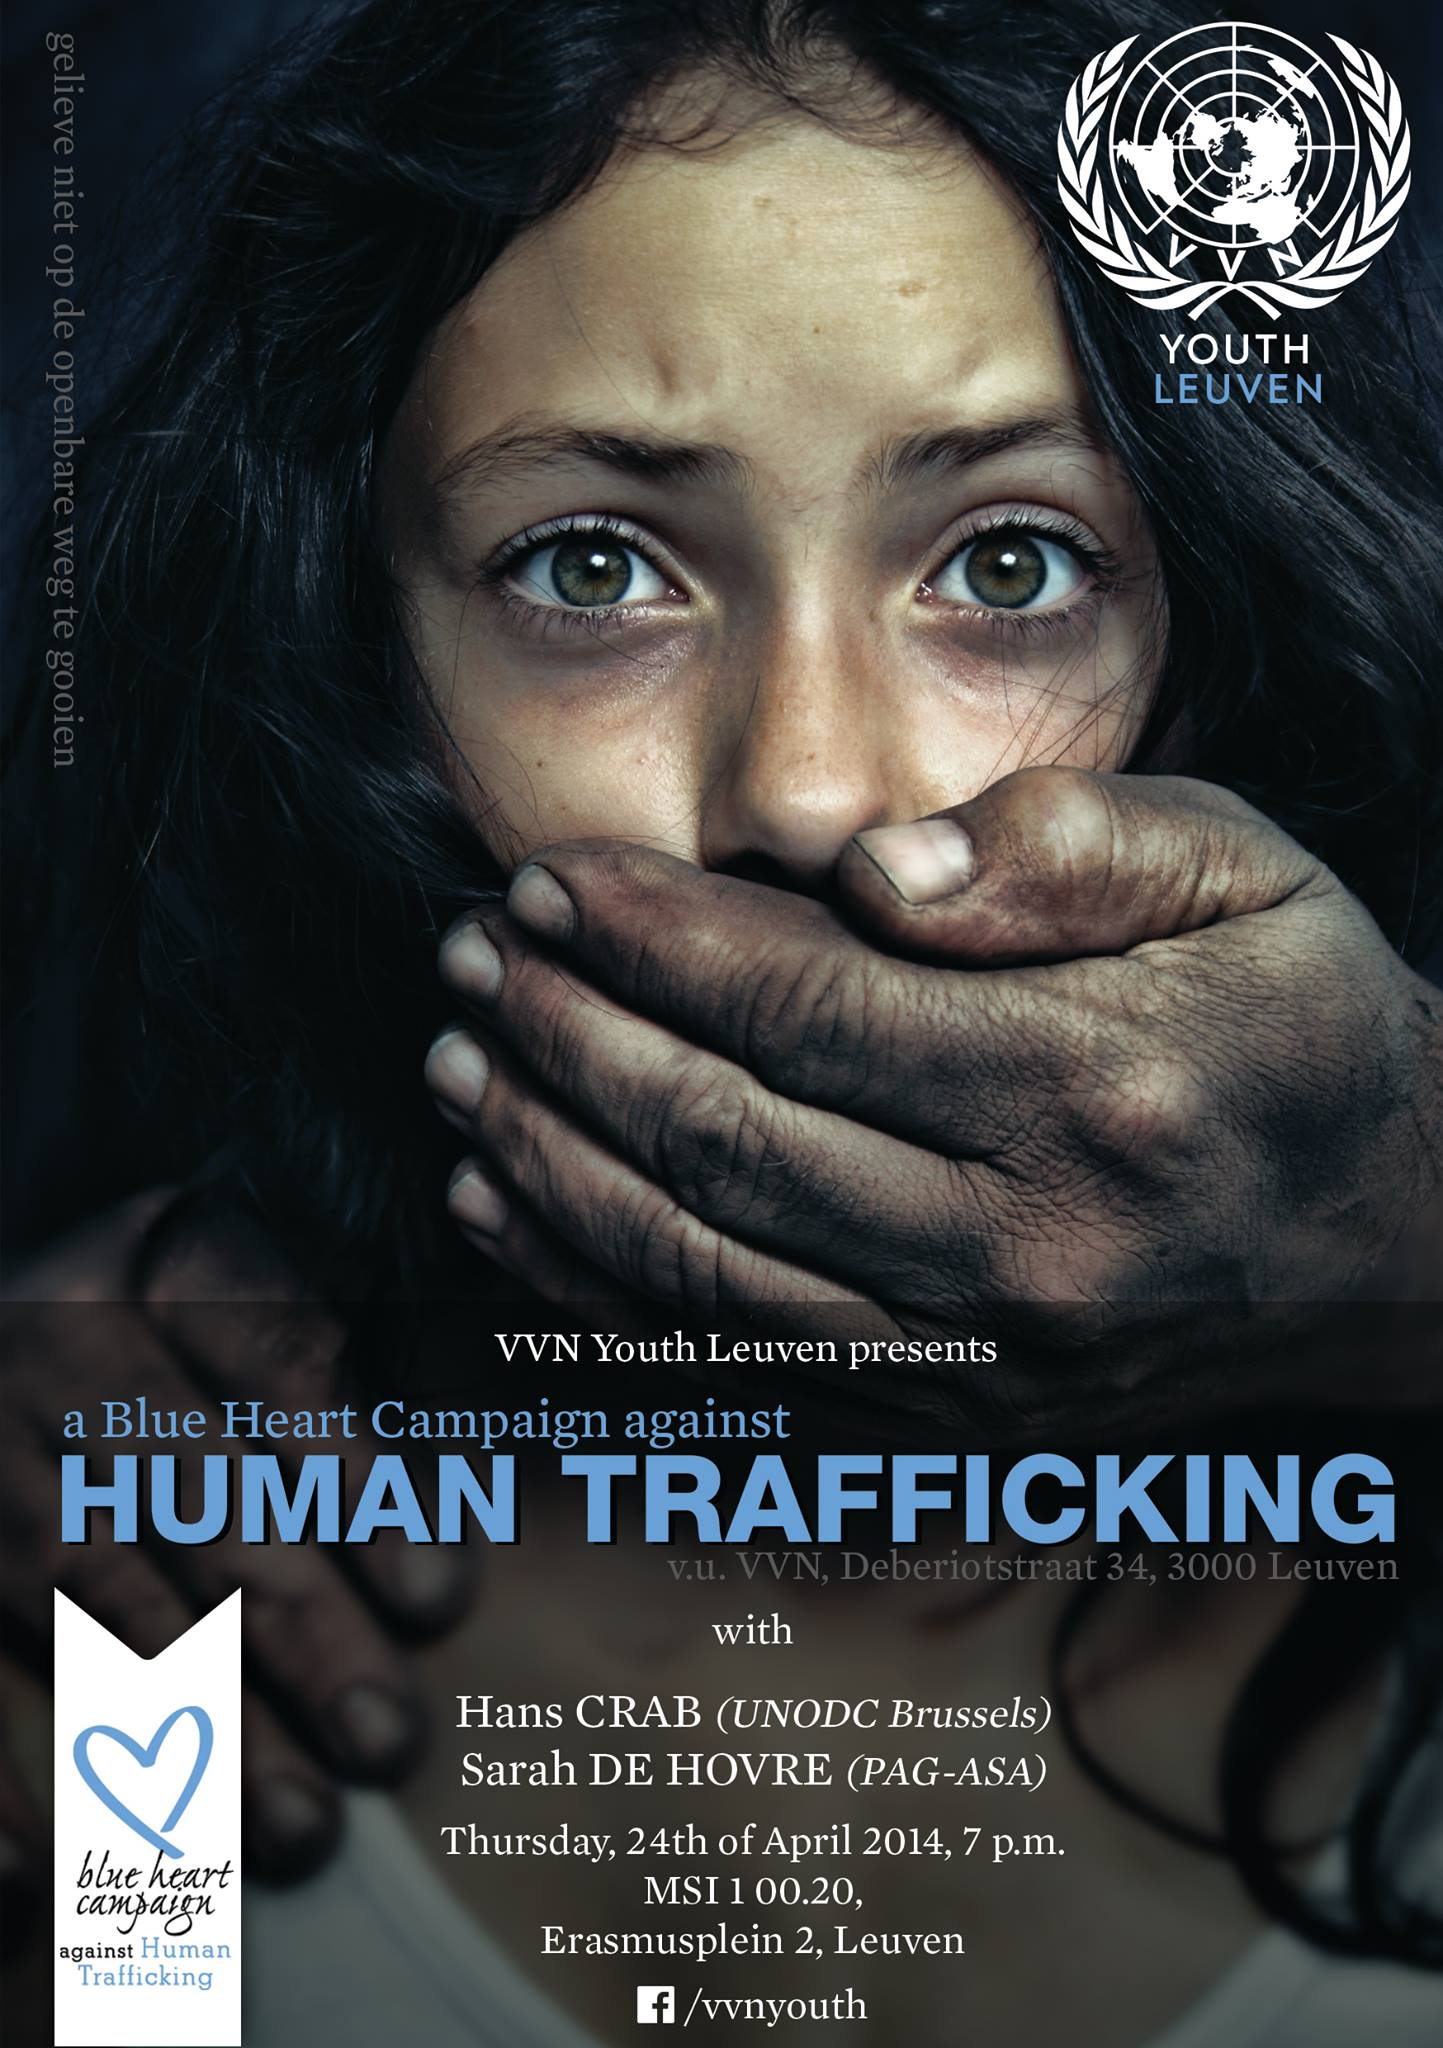 Human trafficking: The faith and justice communities must work together to fight this scourge